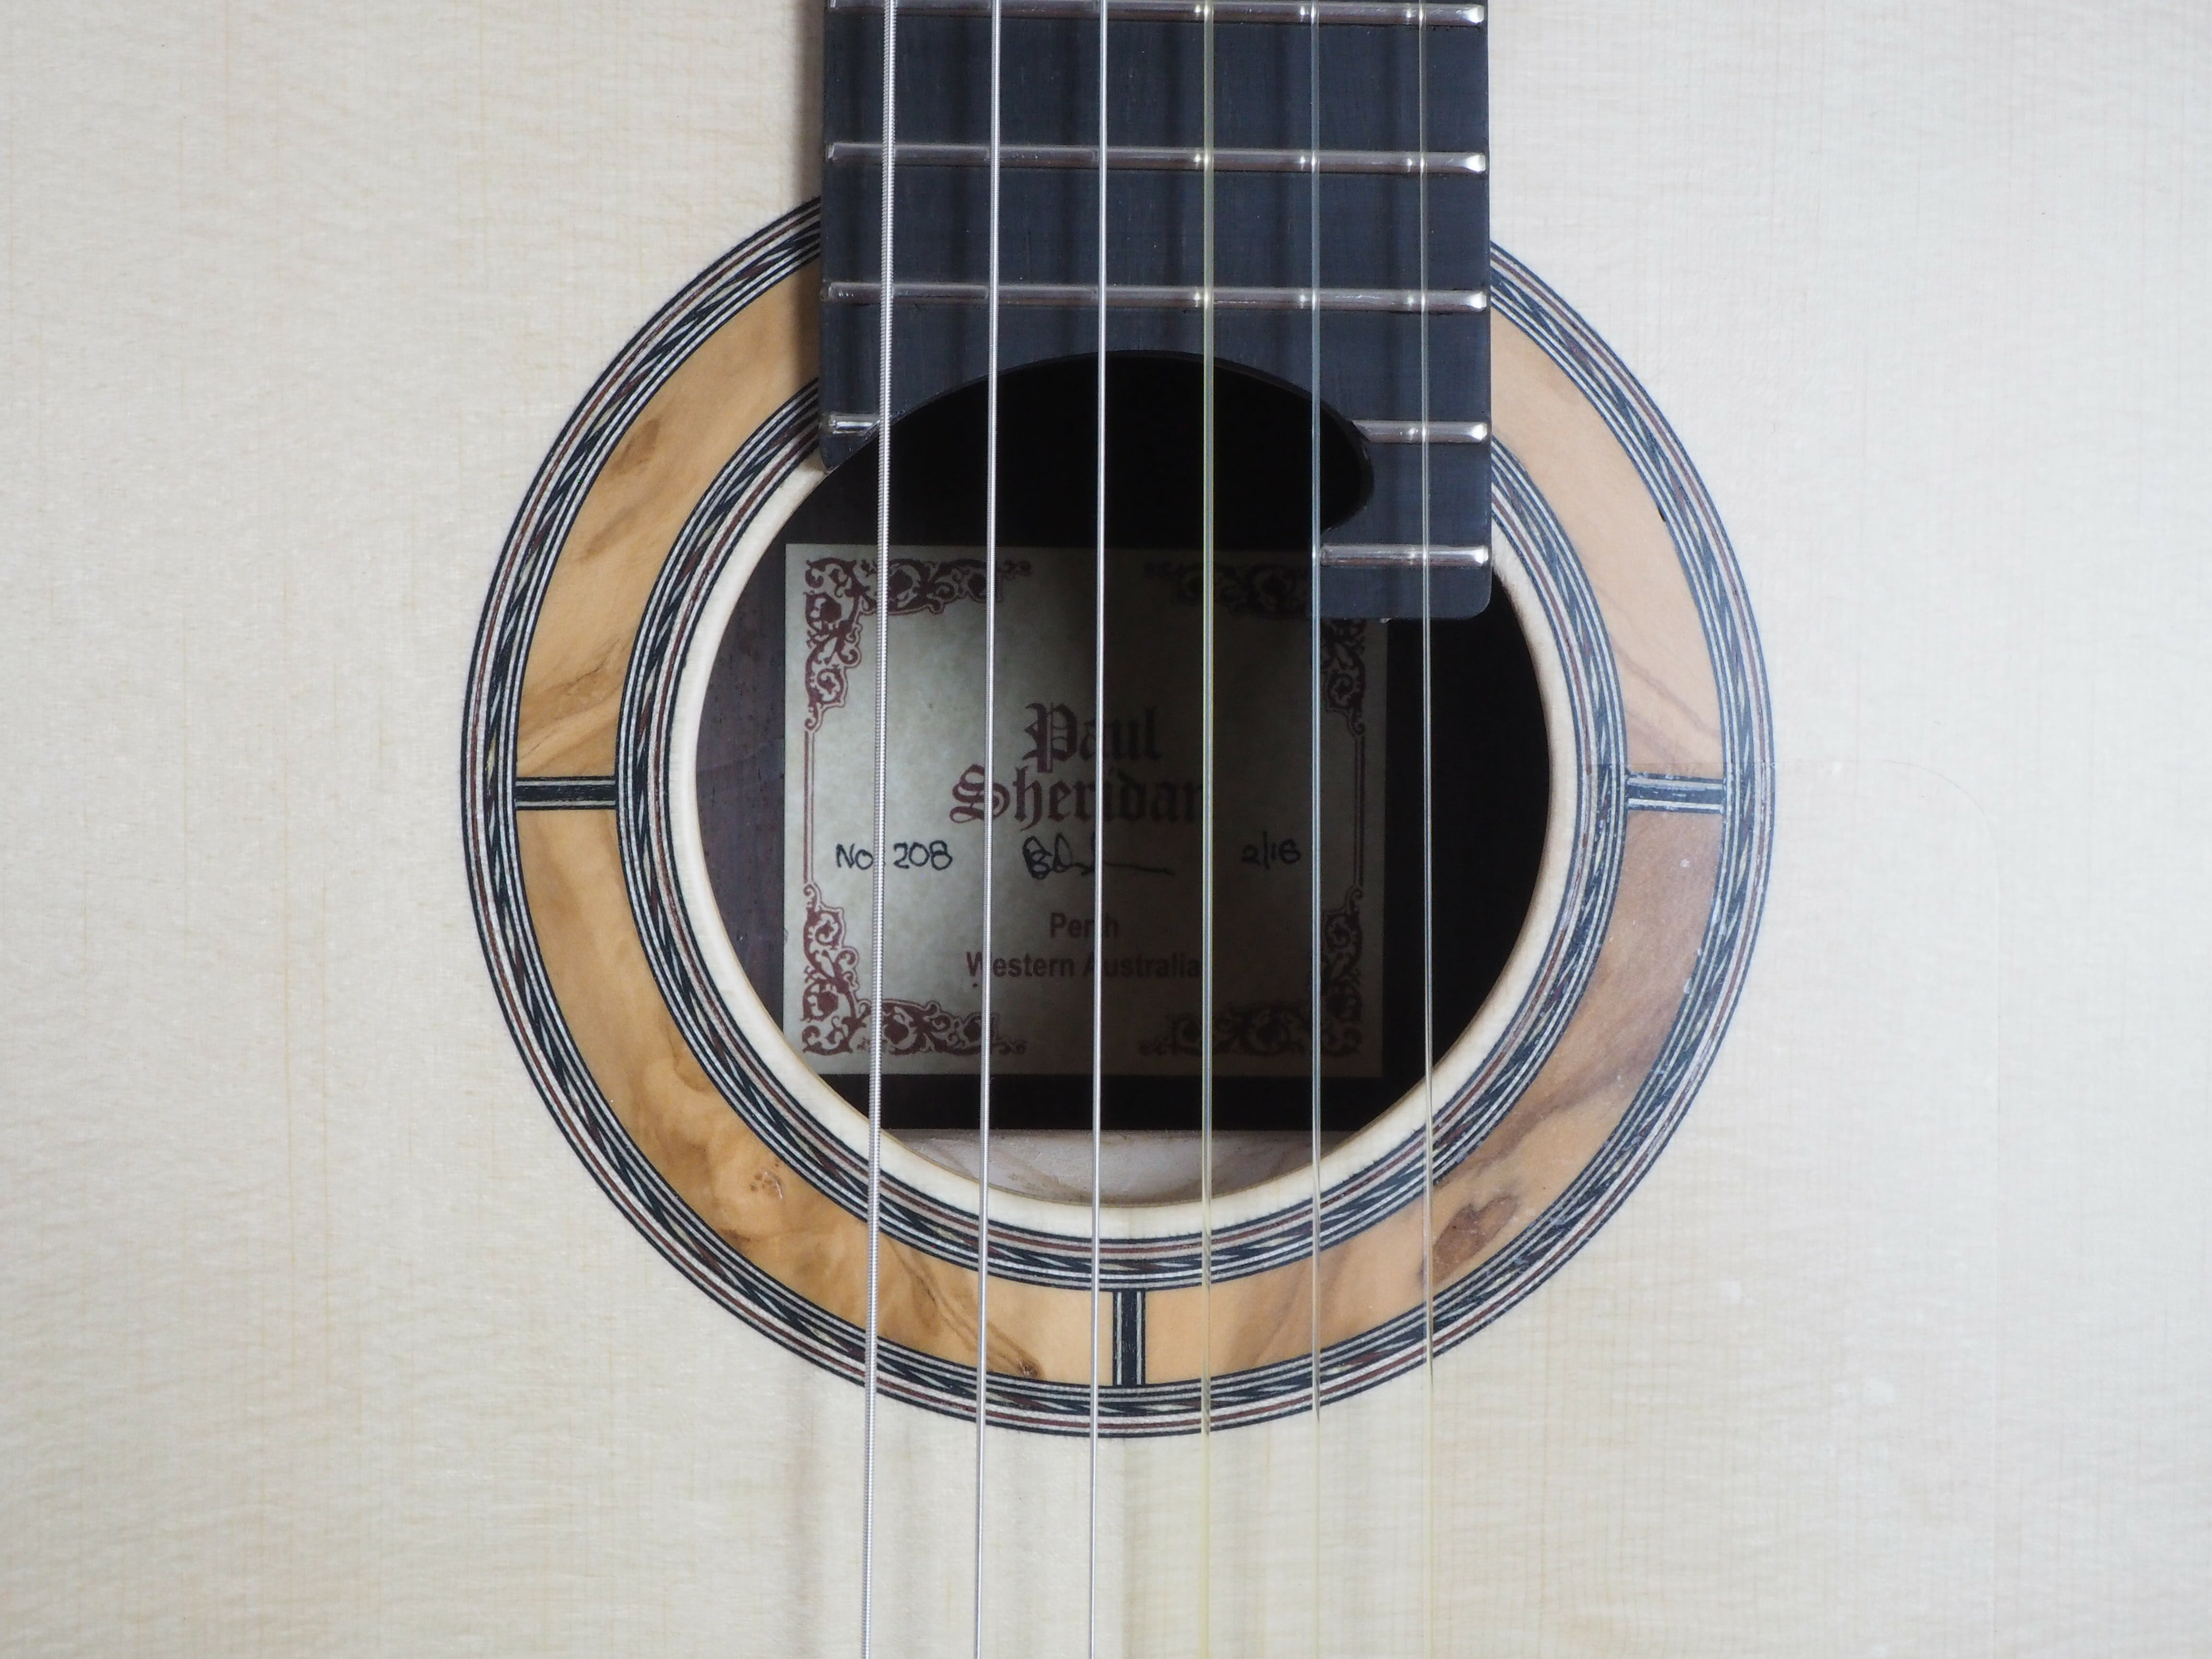 Paul sheridan classical guitar luthier lattice. Availaible on our website www.concert-classic-guitar.com